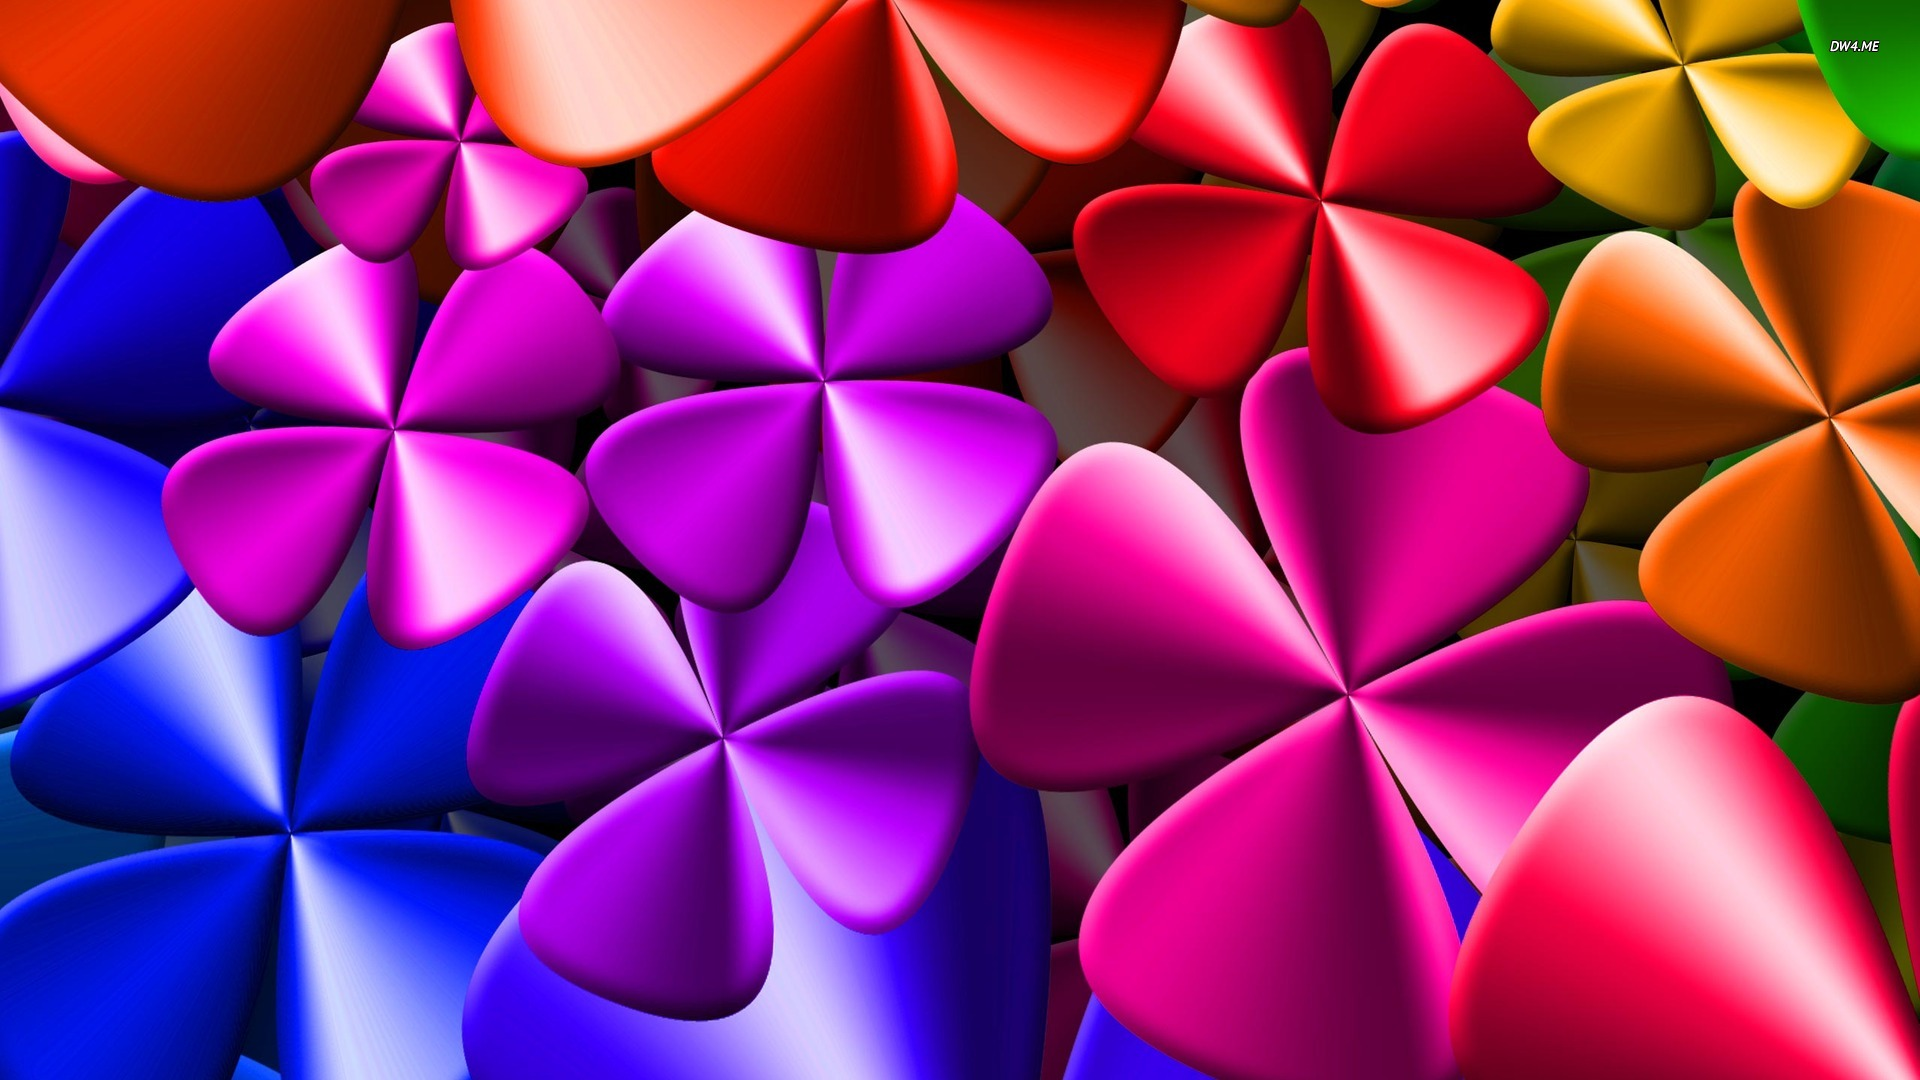 Colorful clovers wallpaper   588795 1920x1080